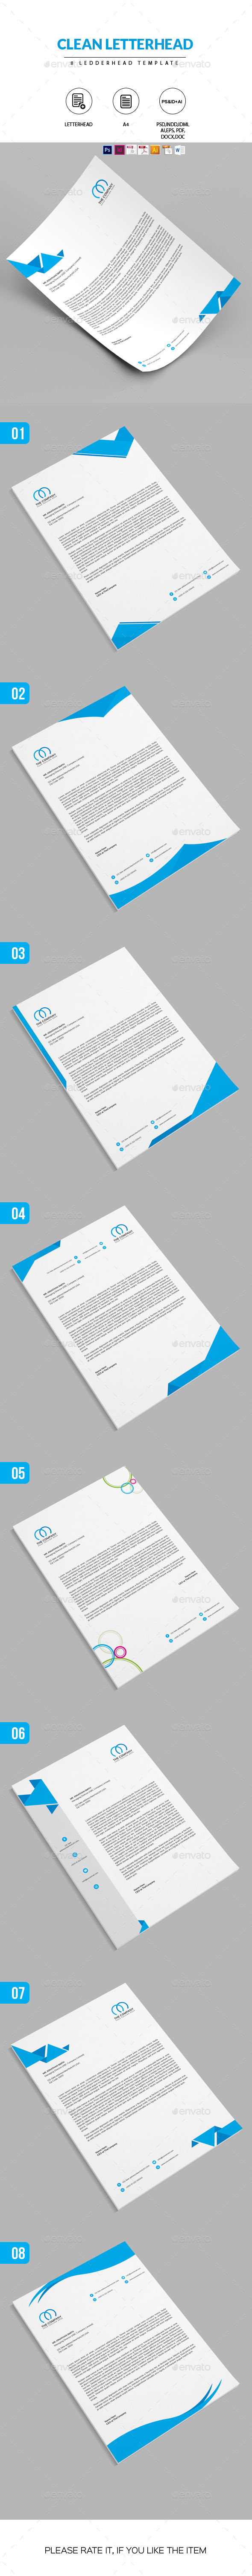 8 Letterhead Template Pack - Proposals & Invoices Stationery